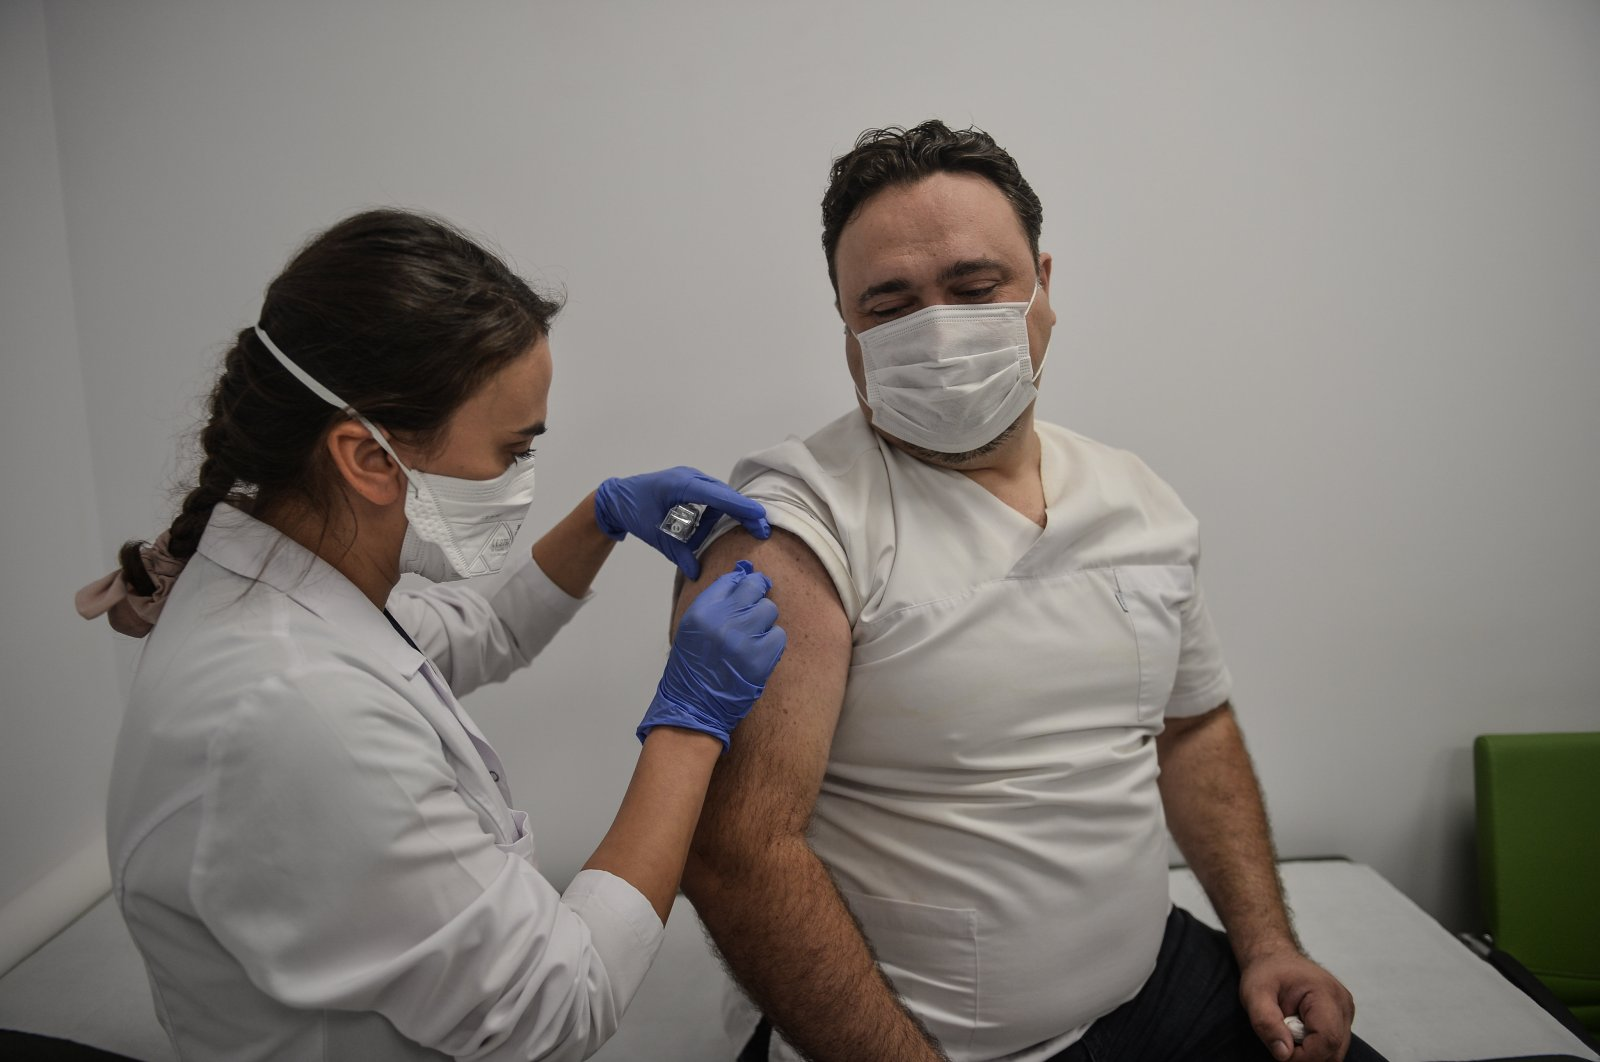 Tarkan Tuna, a health care worker, gets vaccinated for a vaccine trial, in Kocaeli, northwestern Turkey, Sept. 25, 2020. (DHA PHOTO)